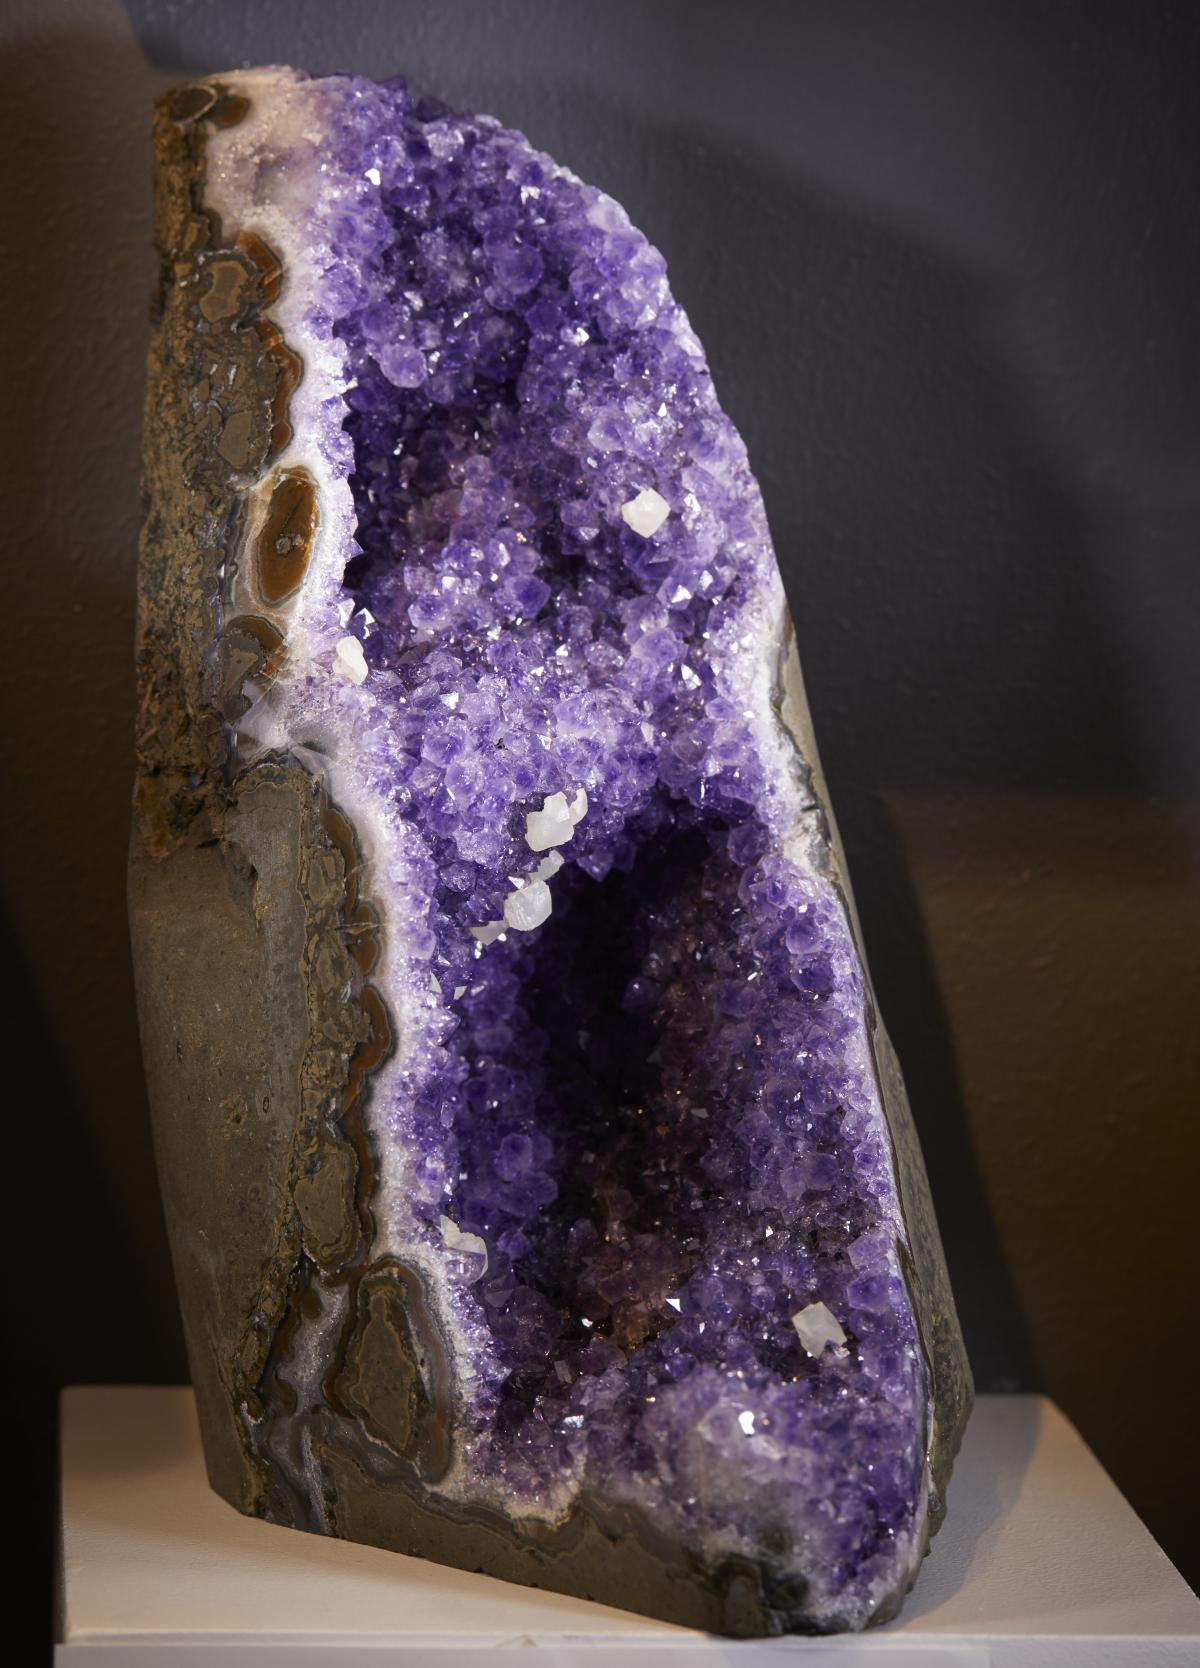 UNUSUAL AMETHYST CLUSTER WITH STALACTITE FORMATION AND calcite